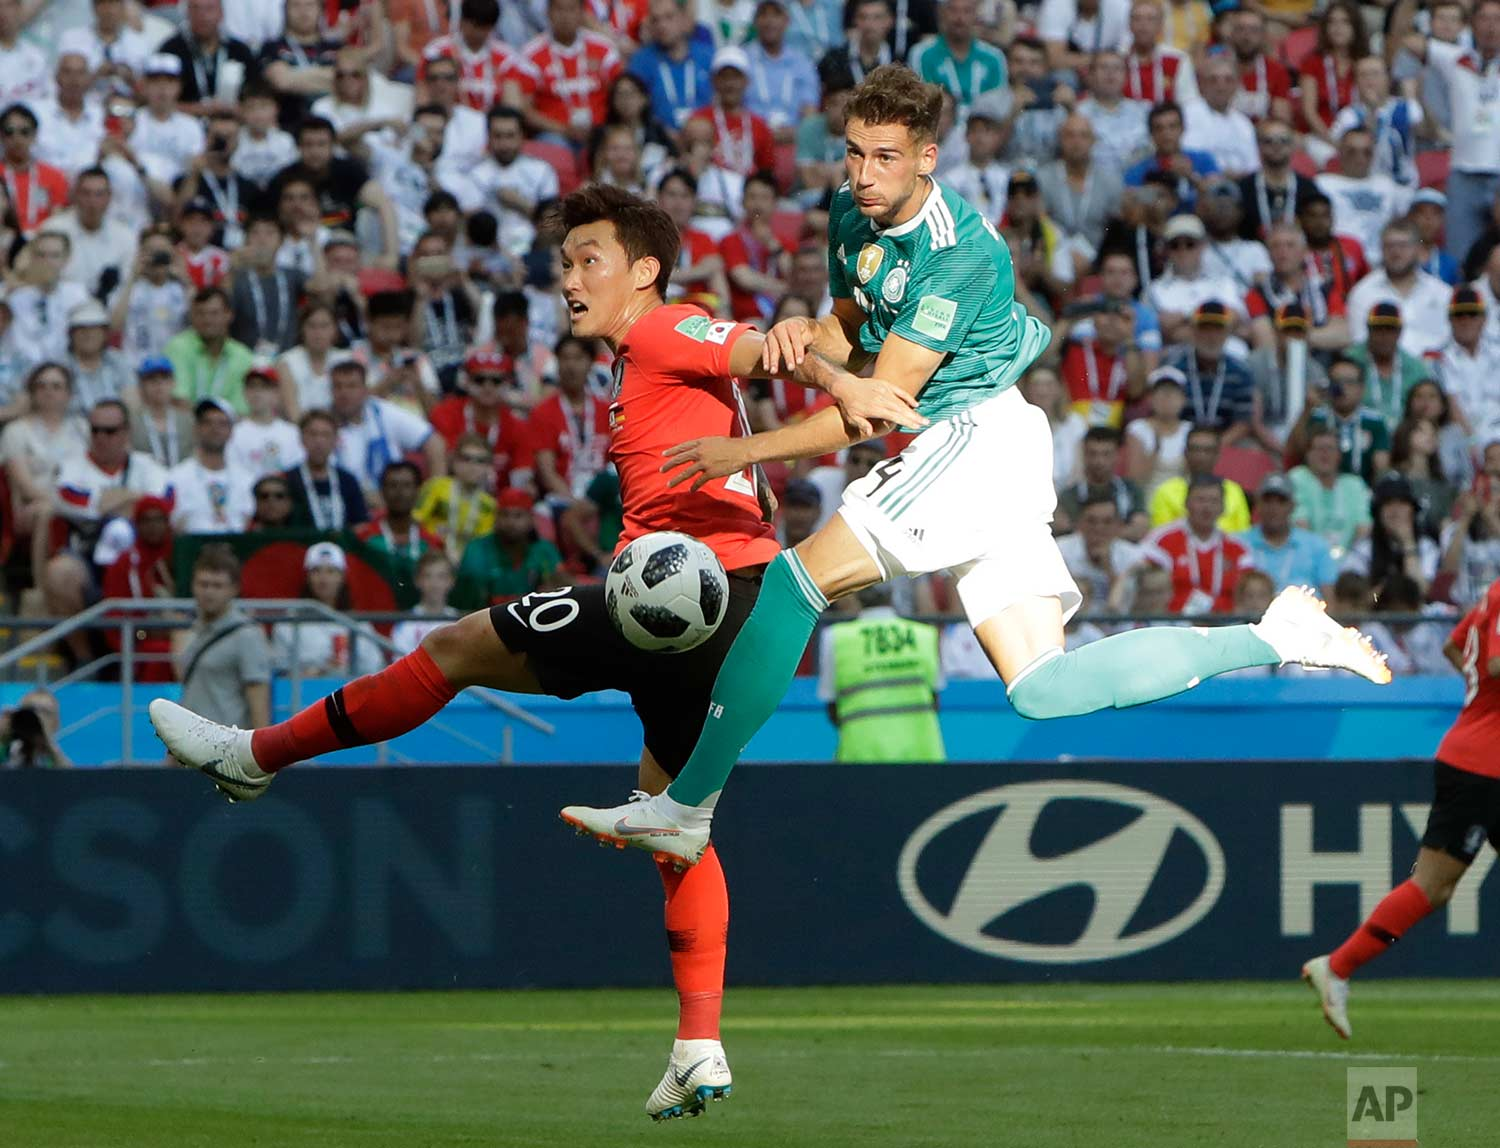 Germany's Leon Goretzka, right, and South Korea's Jang Hyun-soo challenge for the ball during the group F match between South Korea and Germany, at the 2018 soccer World Cup in the Kazan Arena in Kazan, Russia, Wednesday, June 27, 2018. (AP Photo/Michael Probst)